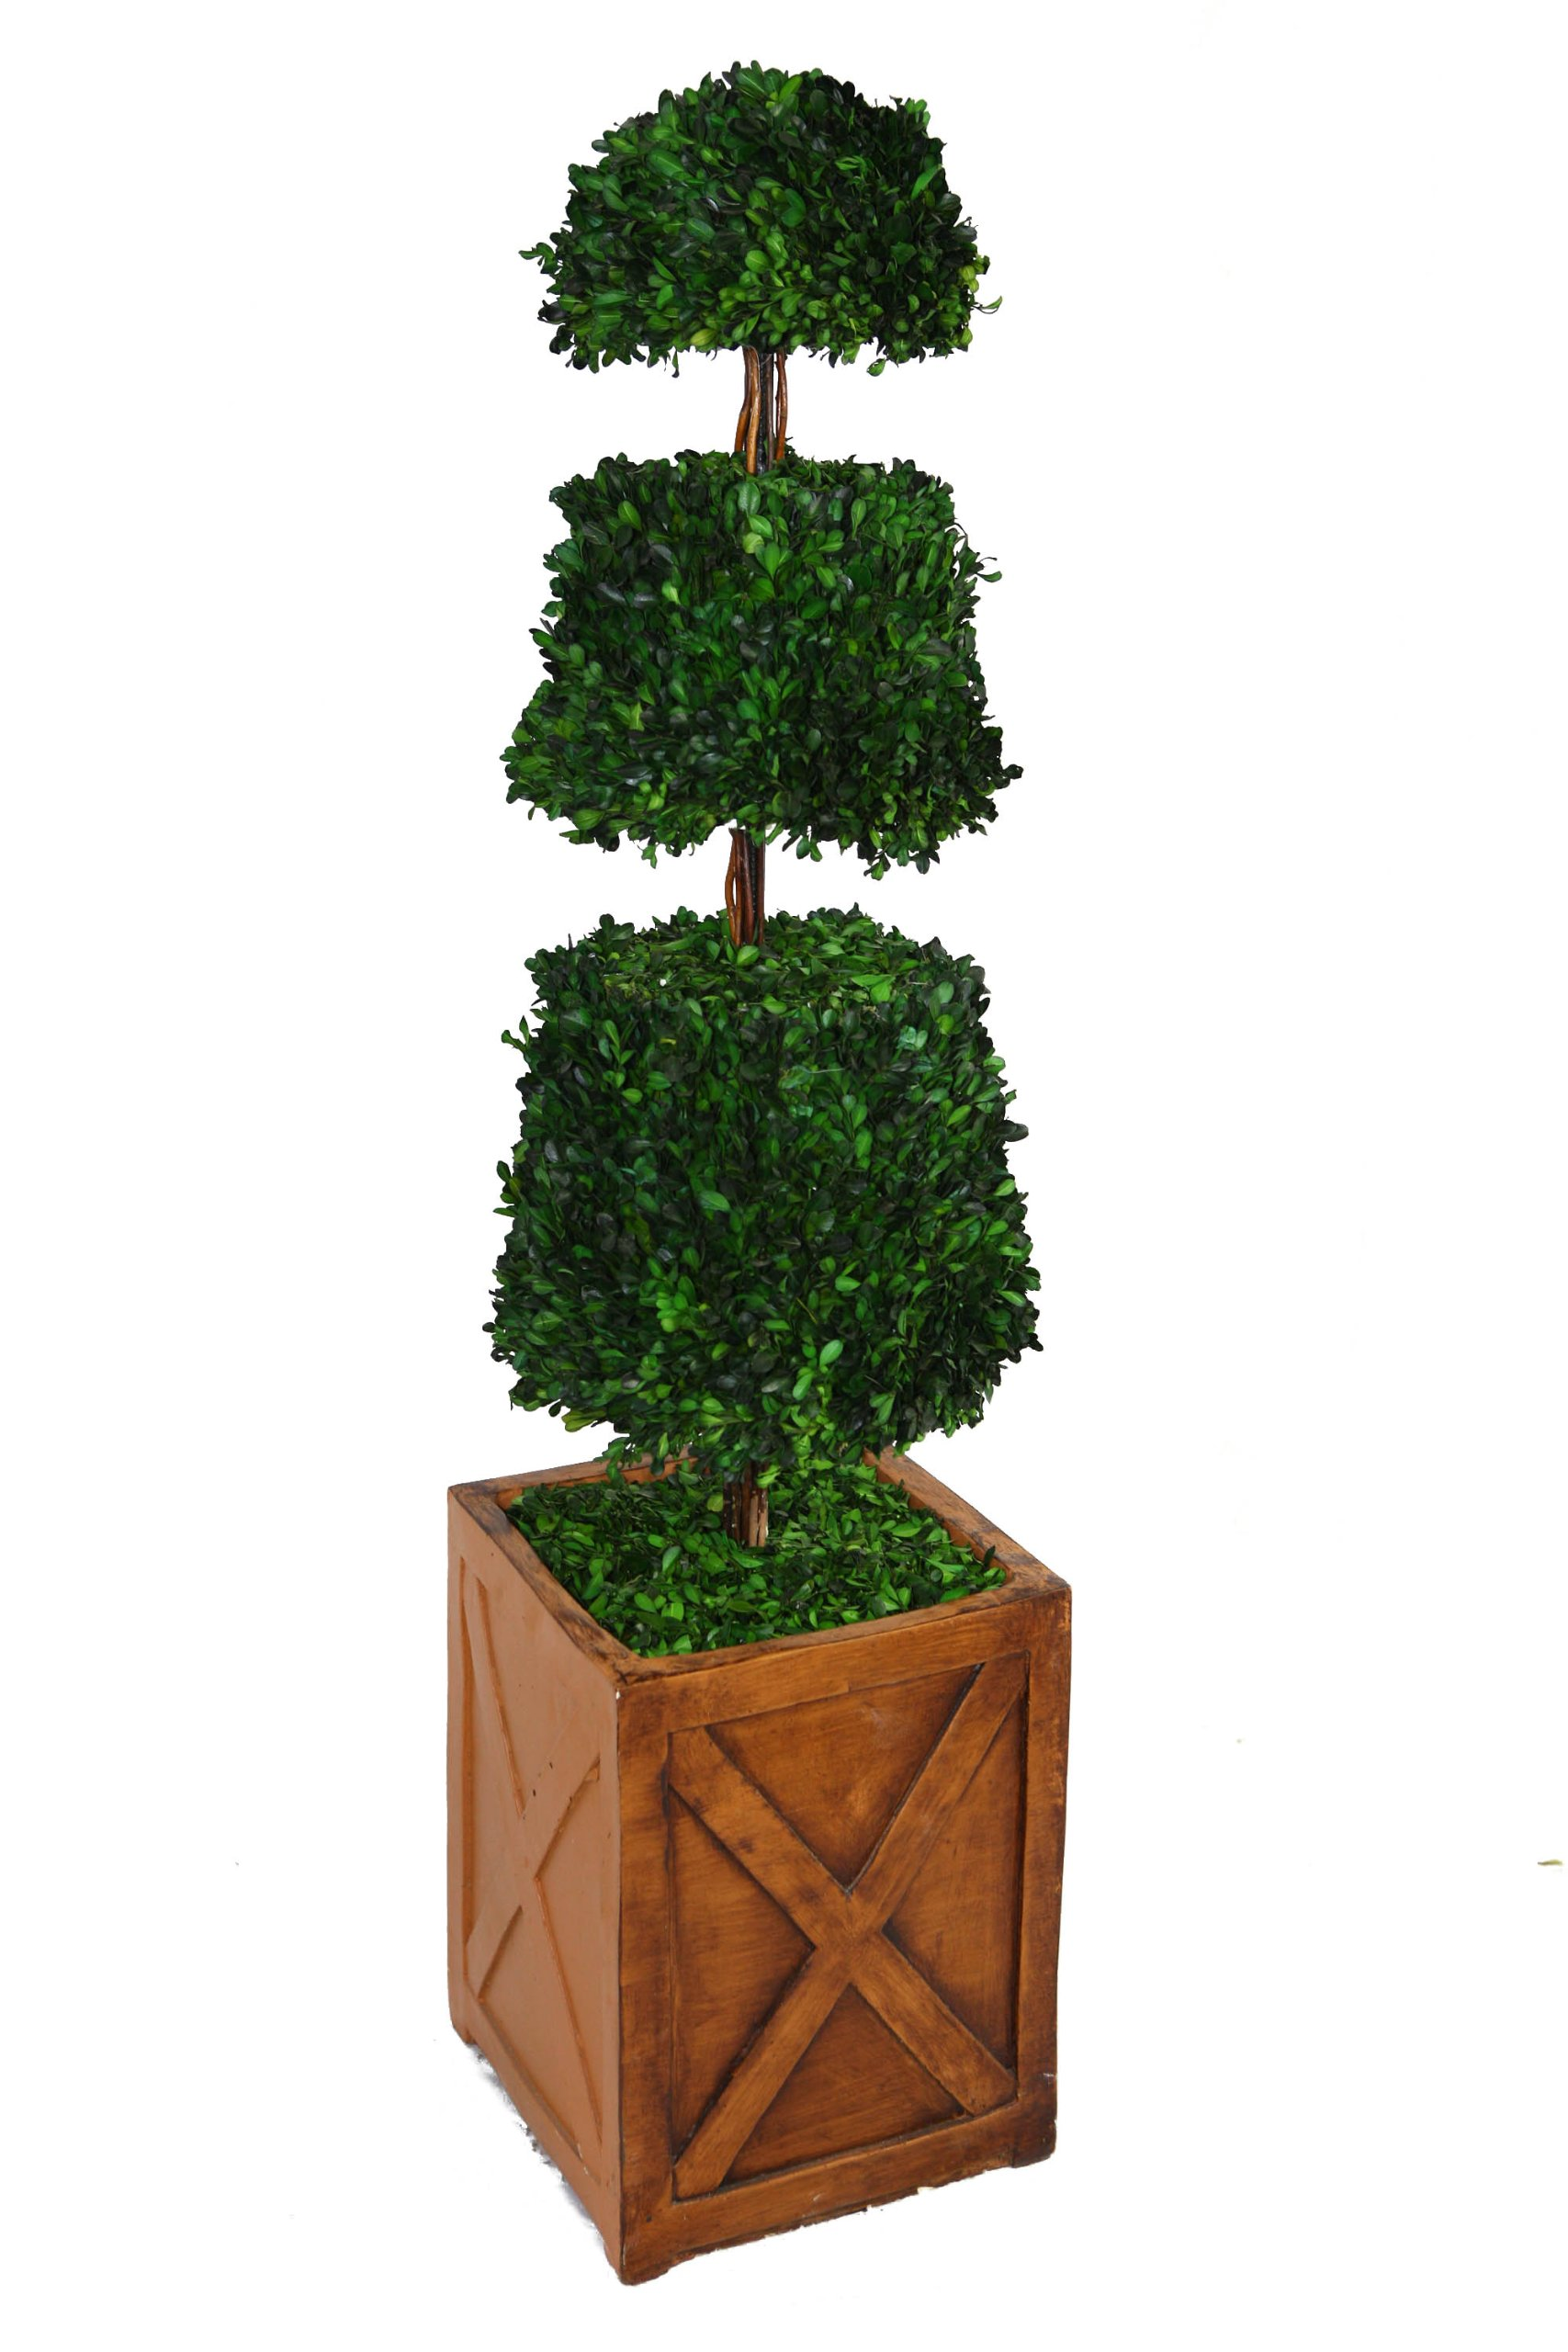 Laura Ashley 53 Inch Tall Preserved Natural Spiral Boxwood Cone Topiary in 13 Inch Fiberstone Planter